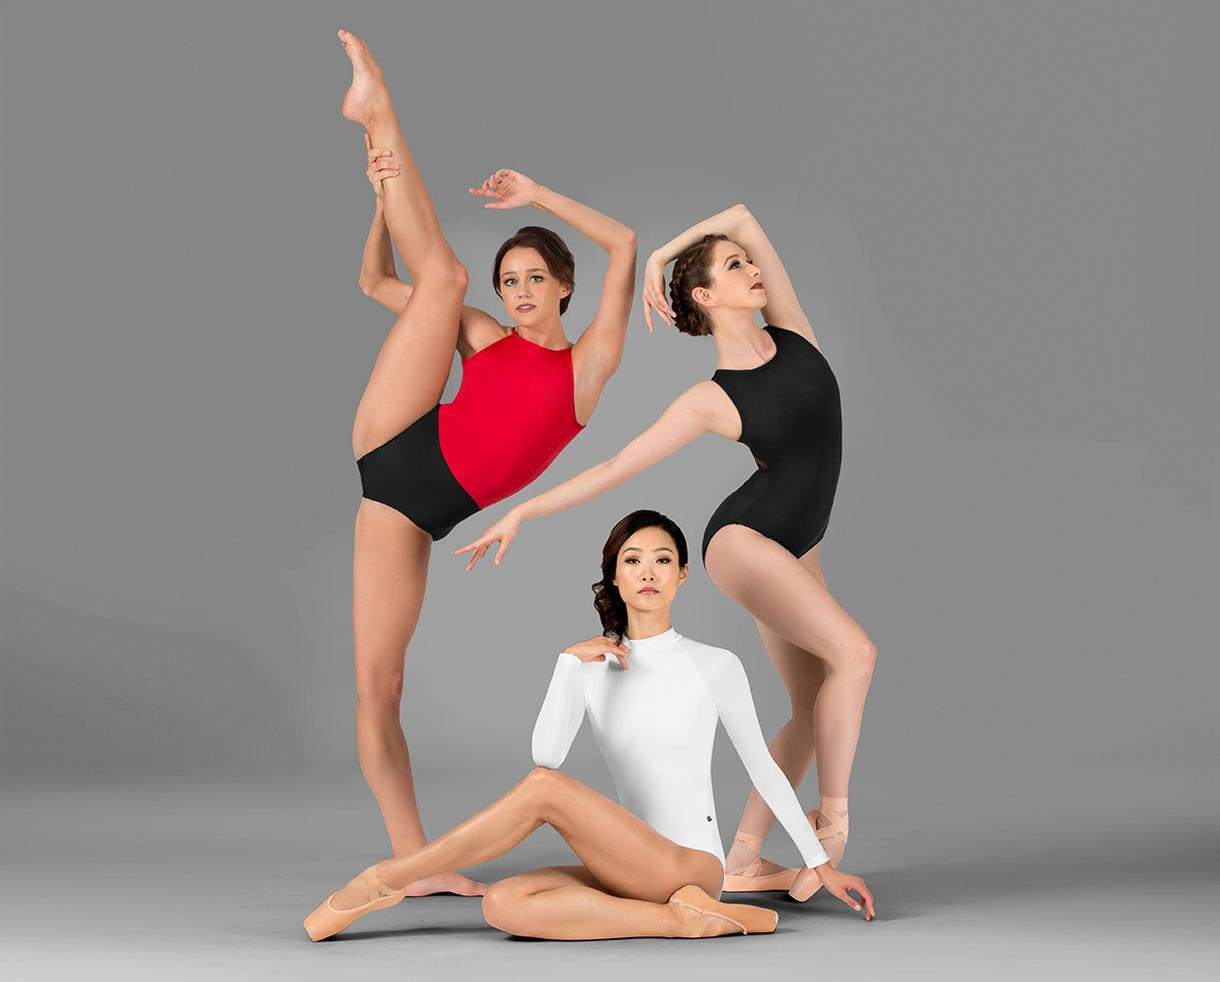 FREE Shipping on Orders $45+ at DiscountDance.com - Unitards, Leotards, Skirts, Tutus, Shoes & More!